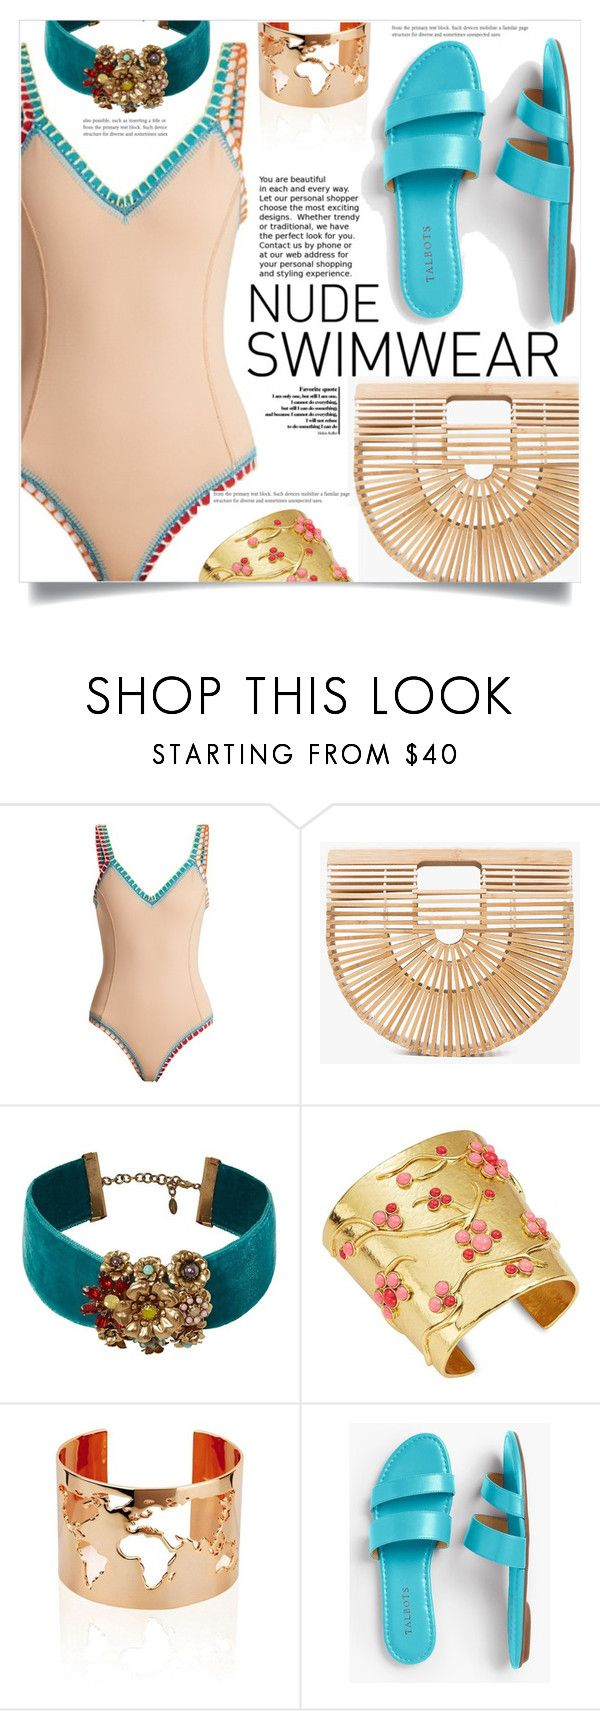 """Bare It All: Nude Swimwear"" by dolly-valkyrie ❤ liked on Polyvore featuring kiini, Cult Gaia, Elizabeth Cole, Oscar de la Renta, Talbots and nudeswimwear"